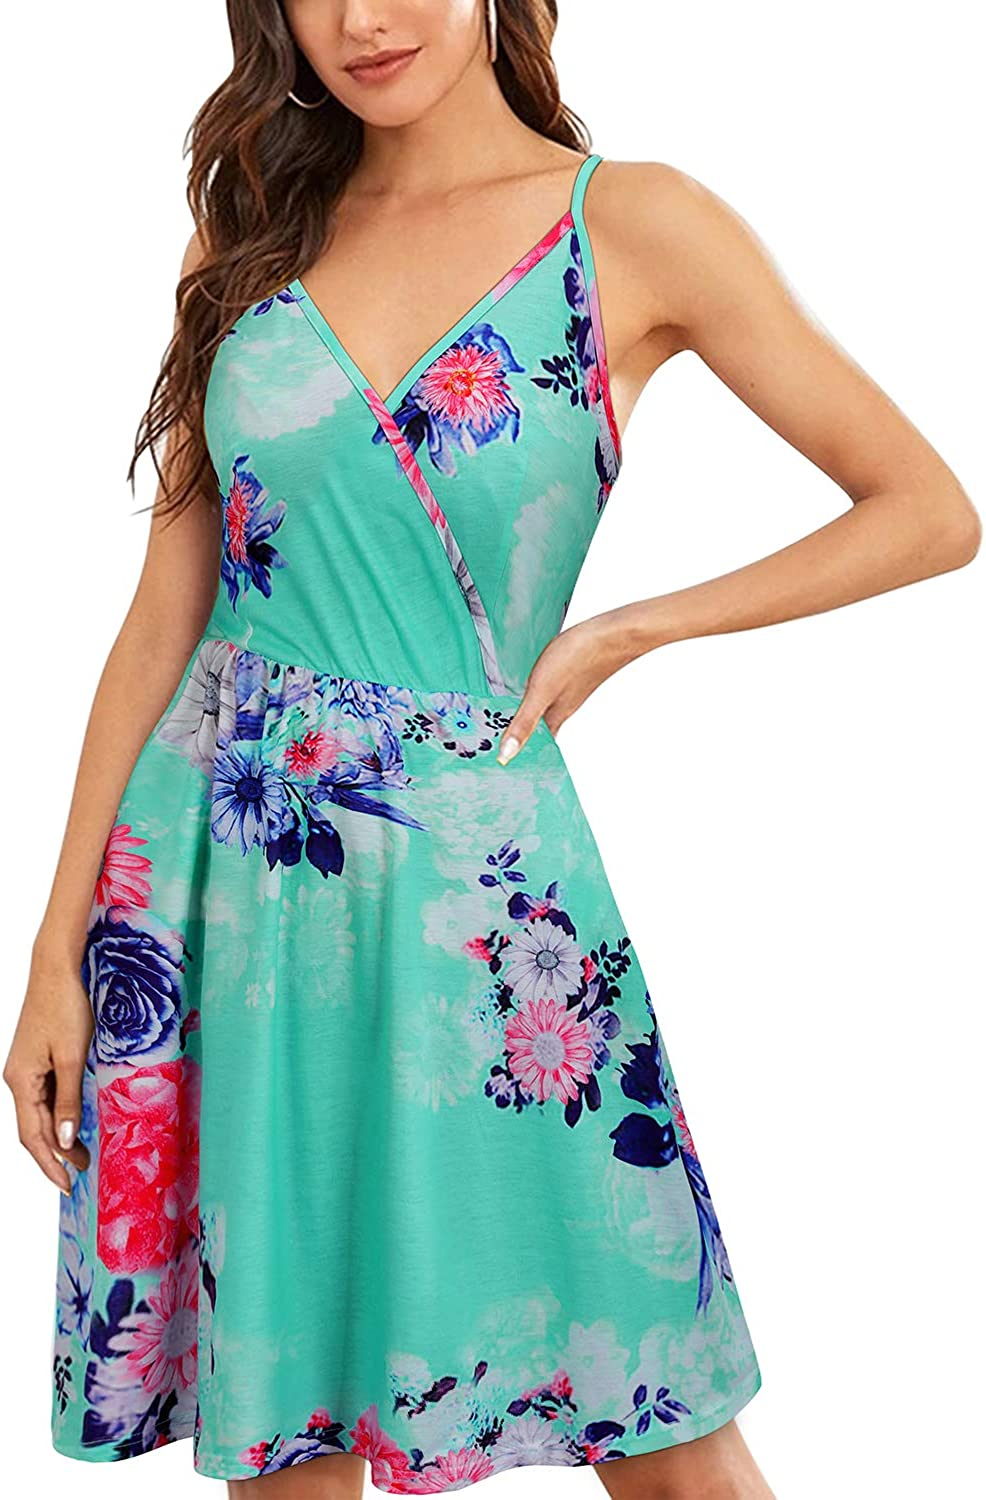 VOTEPRETTY Womens V-Neck Floral Spaghetti Strap Dress Summer Casual Swing Sundress with Pockets